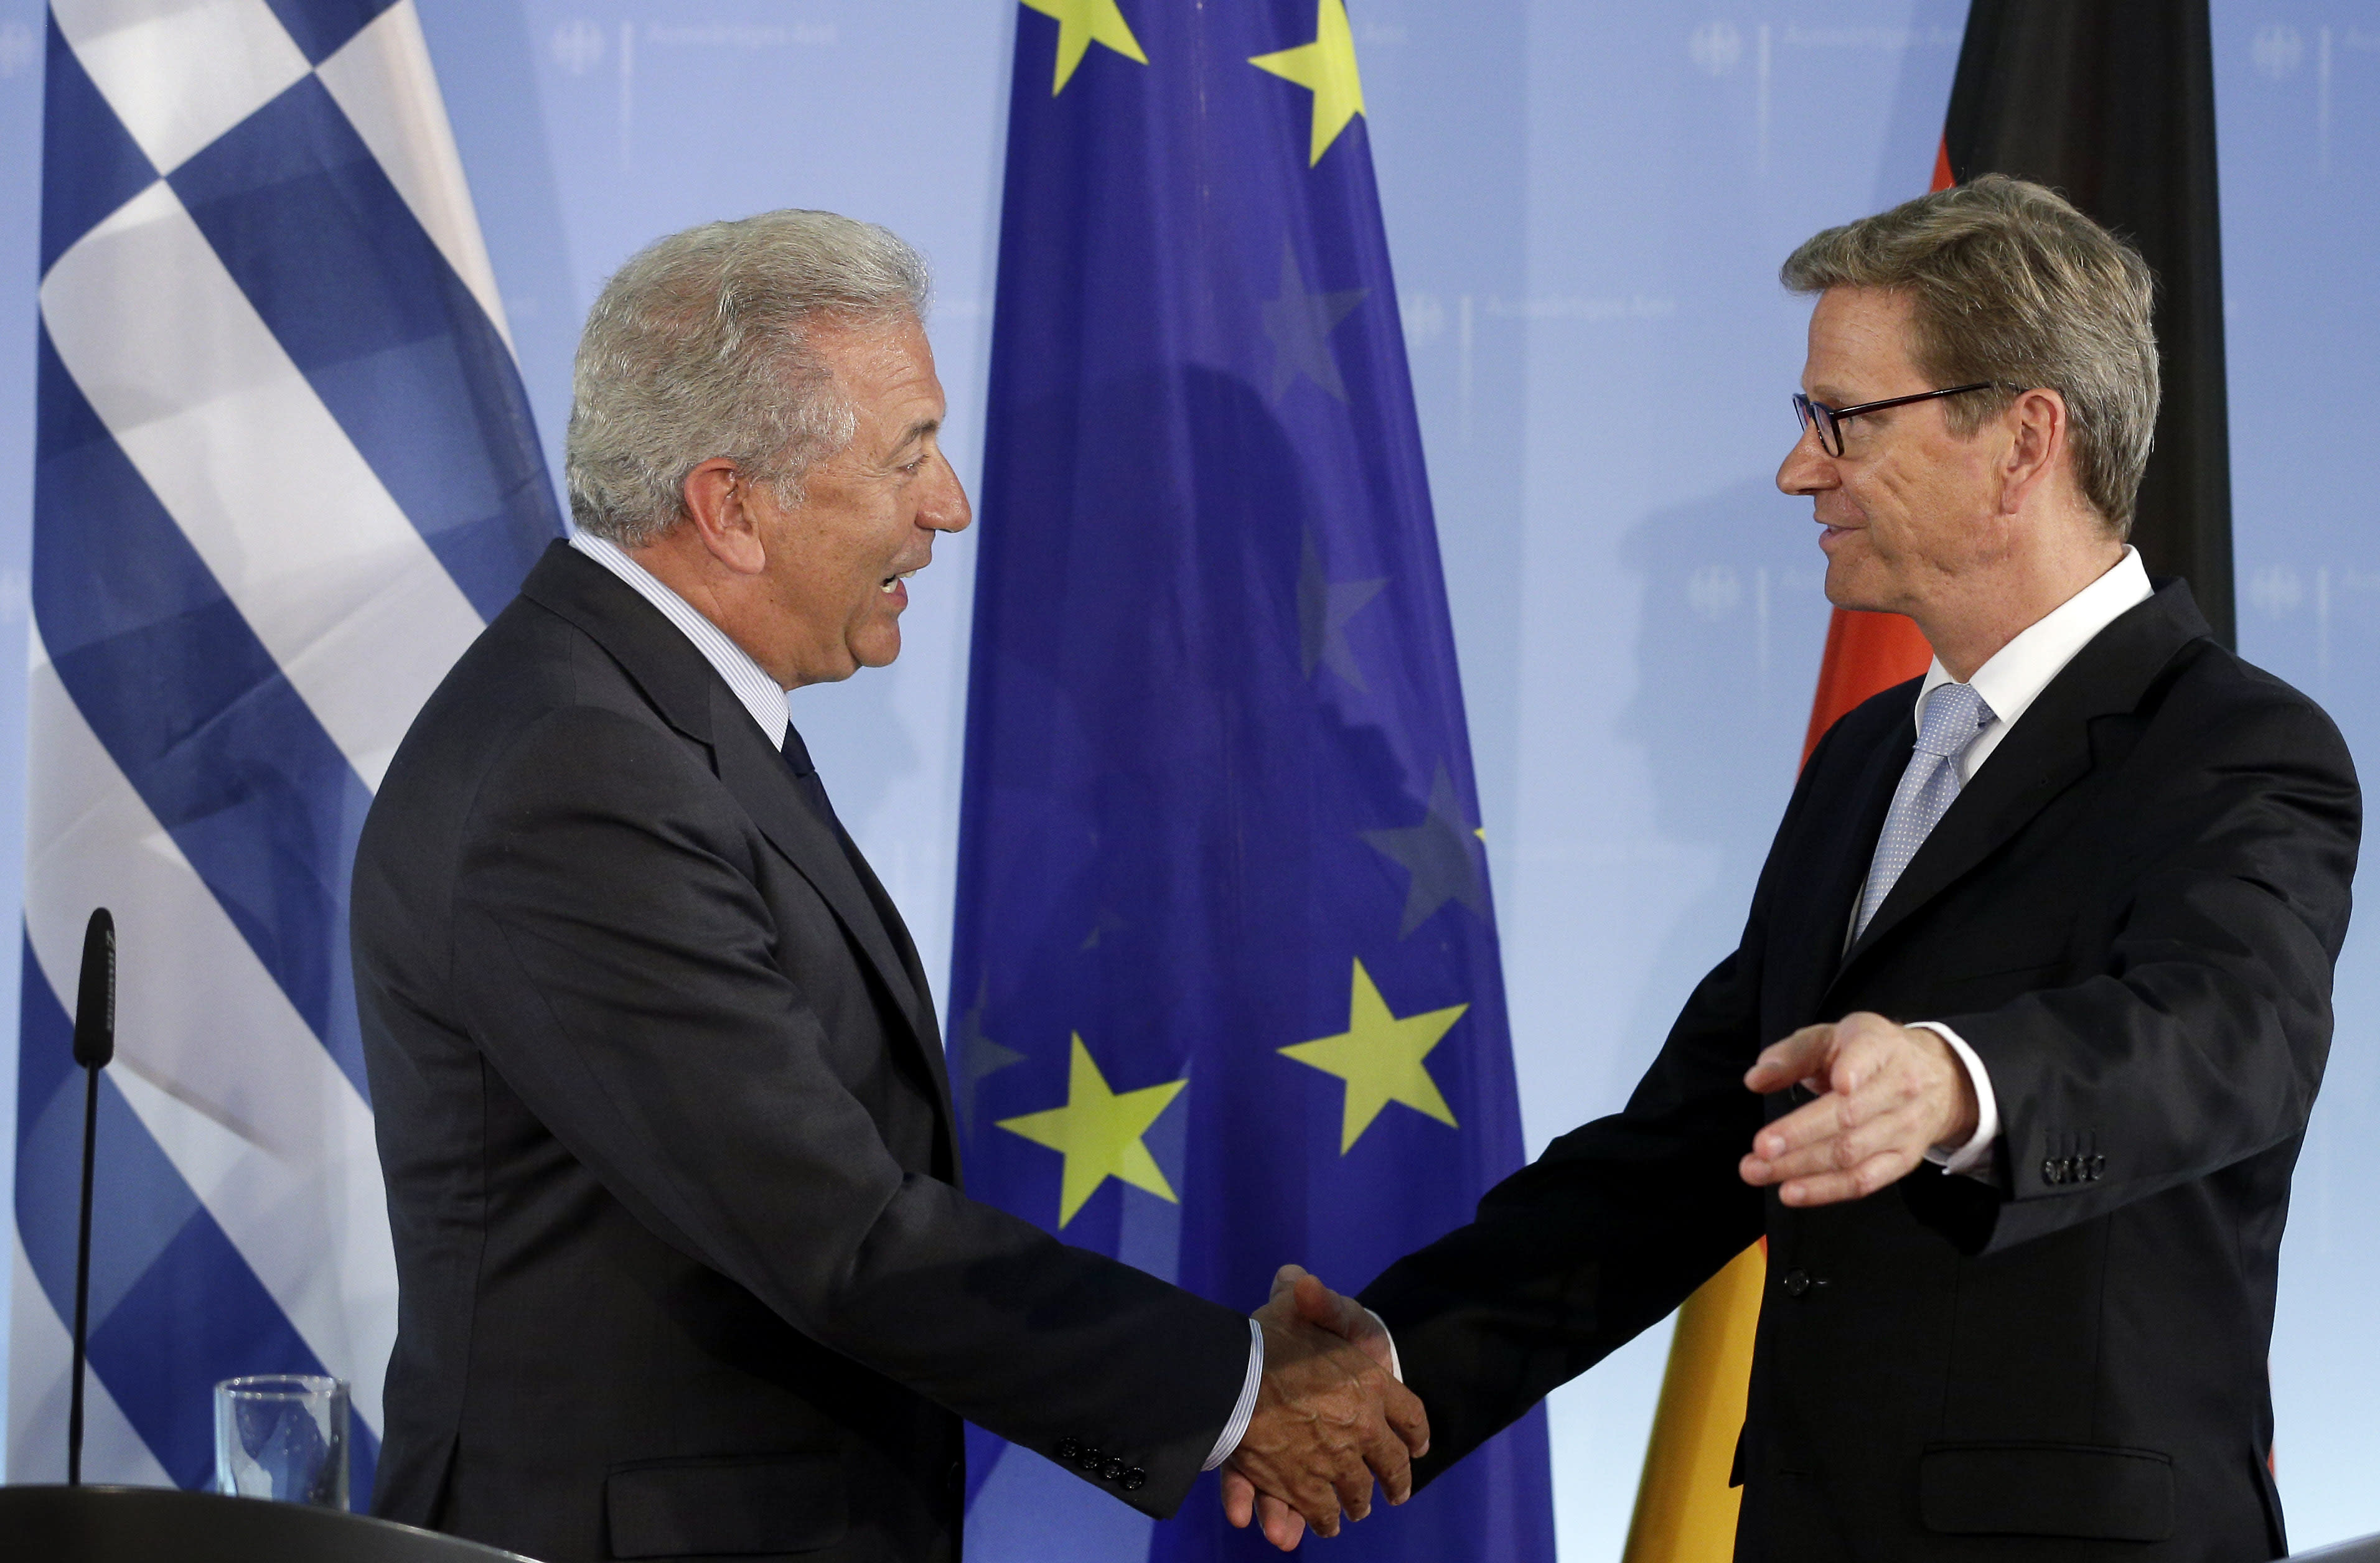 German Foreign Minister Guido Westerwelle right, and his counterpart from Greece, Dimitris Avramopulos, left, shake hands after a joint press conference as part of a meeting at the foreign office in Berlin, Germany, Monday, Aug. 20, 2012. (AP Photo/Michael Sohn)